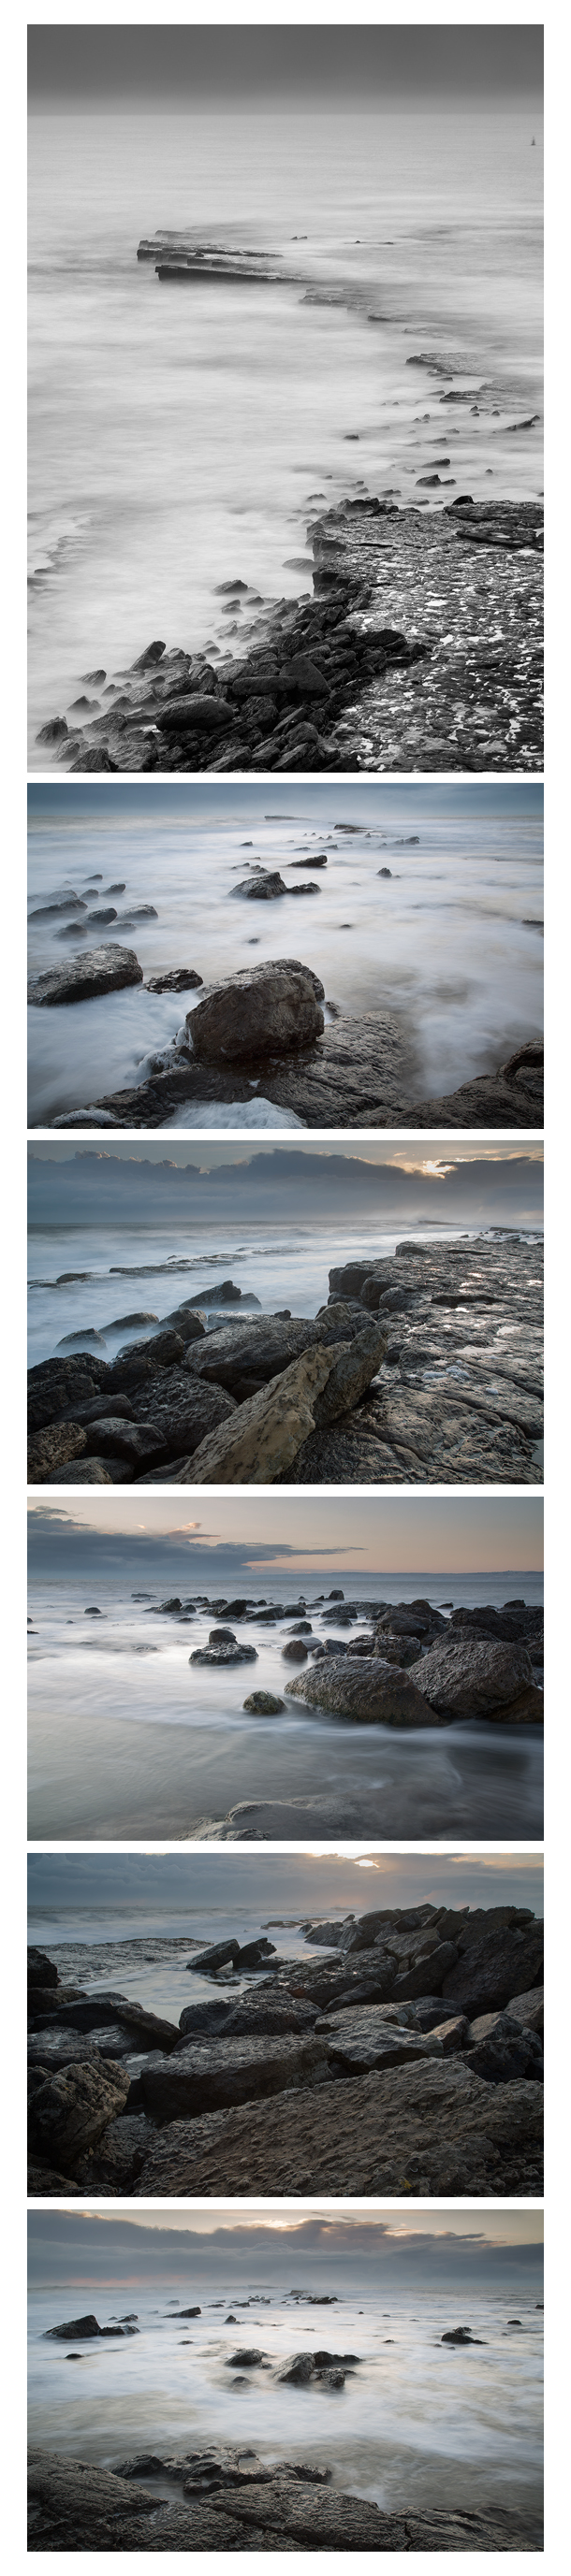 FileyLandscapePhotographyScarboroughLandscapePhotographer1